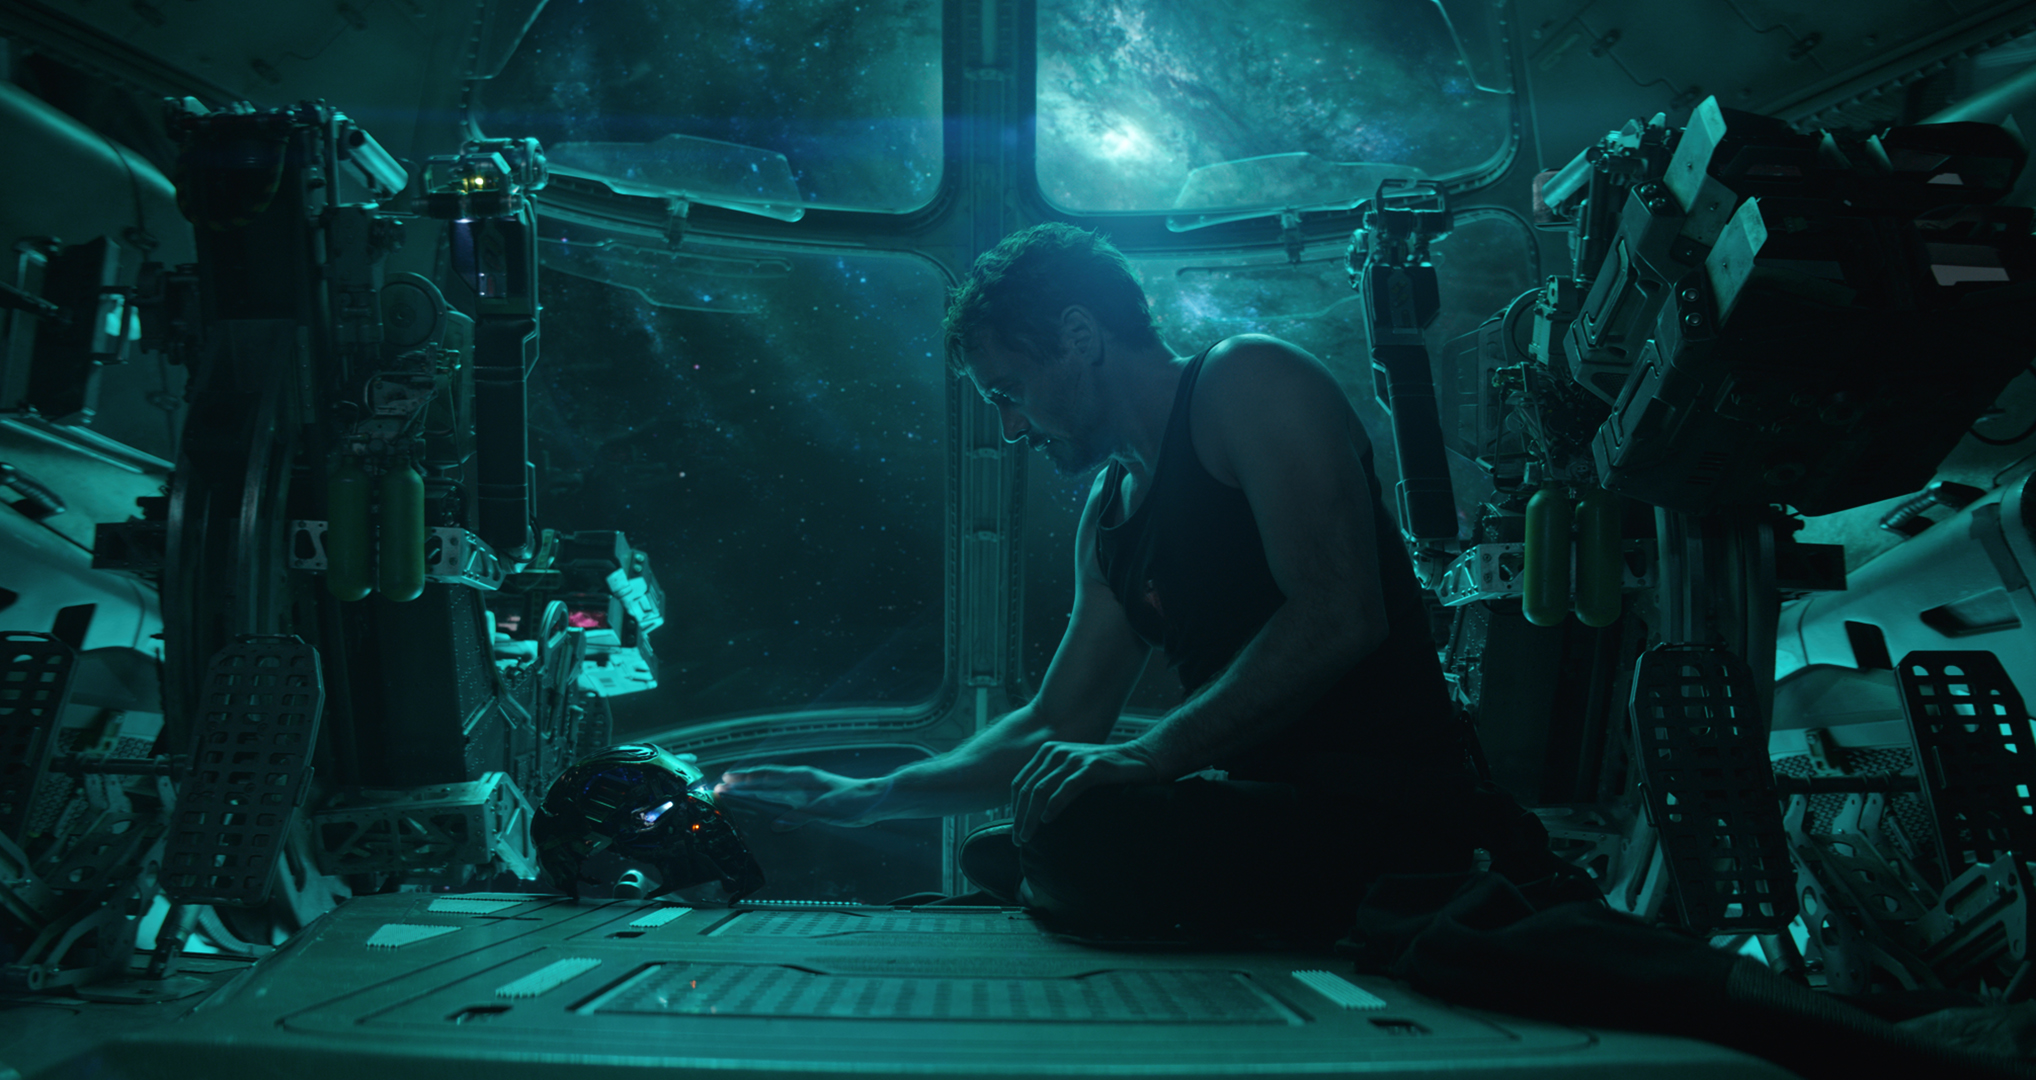 It's 'game on' in the 'Avengers: Endgame' Super Bowl spot